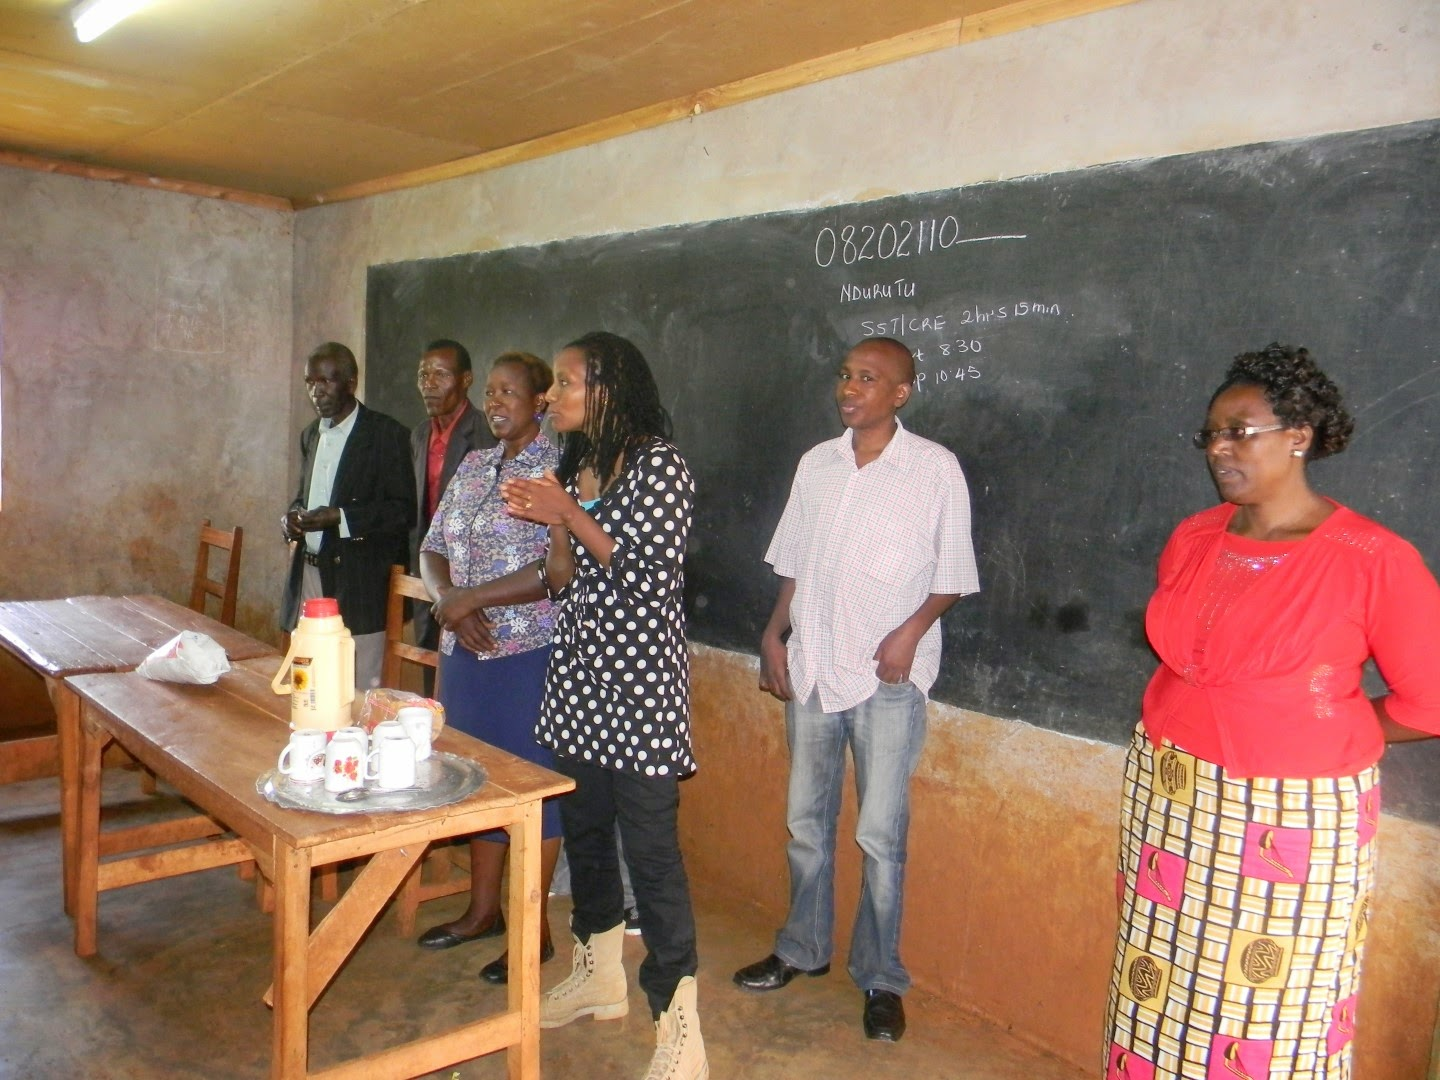 Muthoni Schneidewind and the Kedovo gang talking to the pupils at Ndurutu Primary School